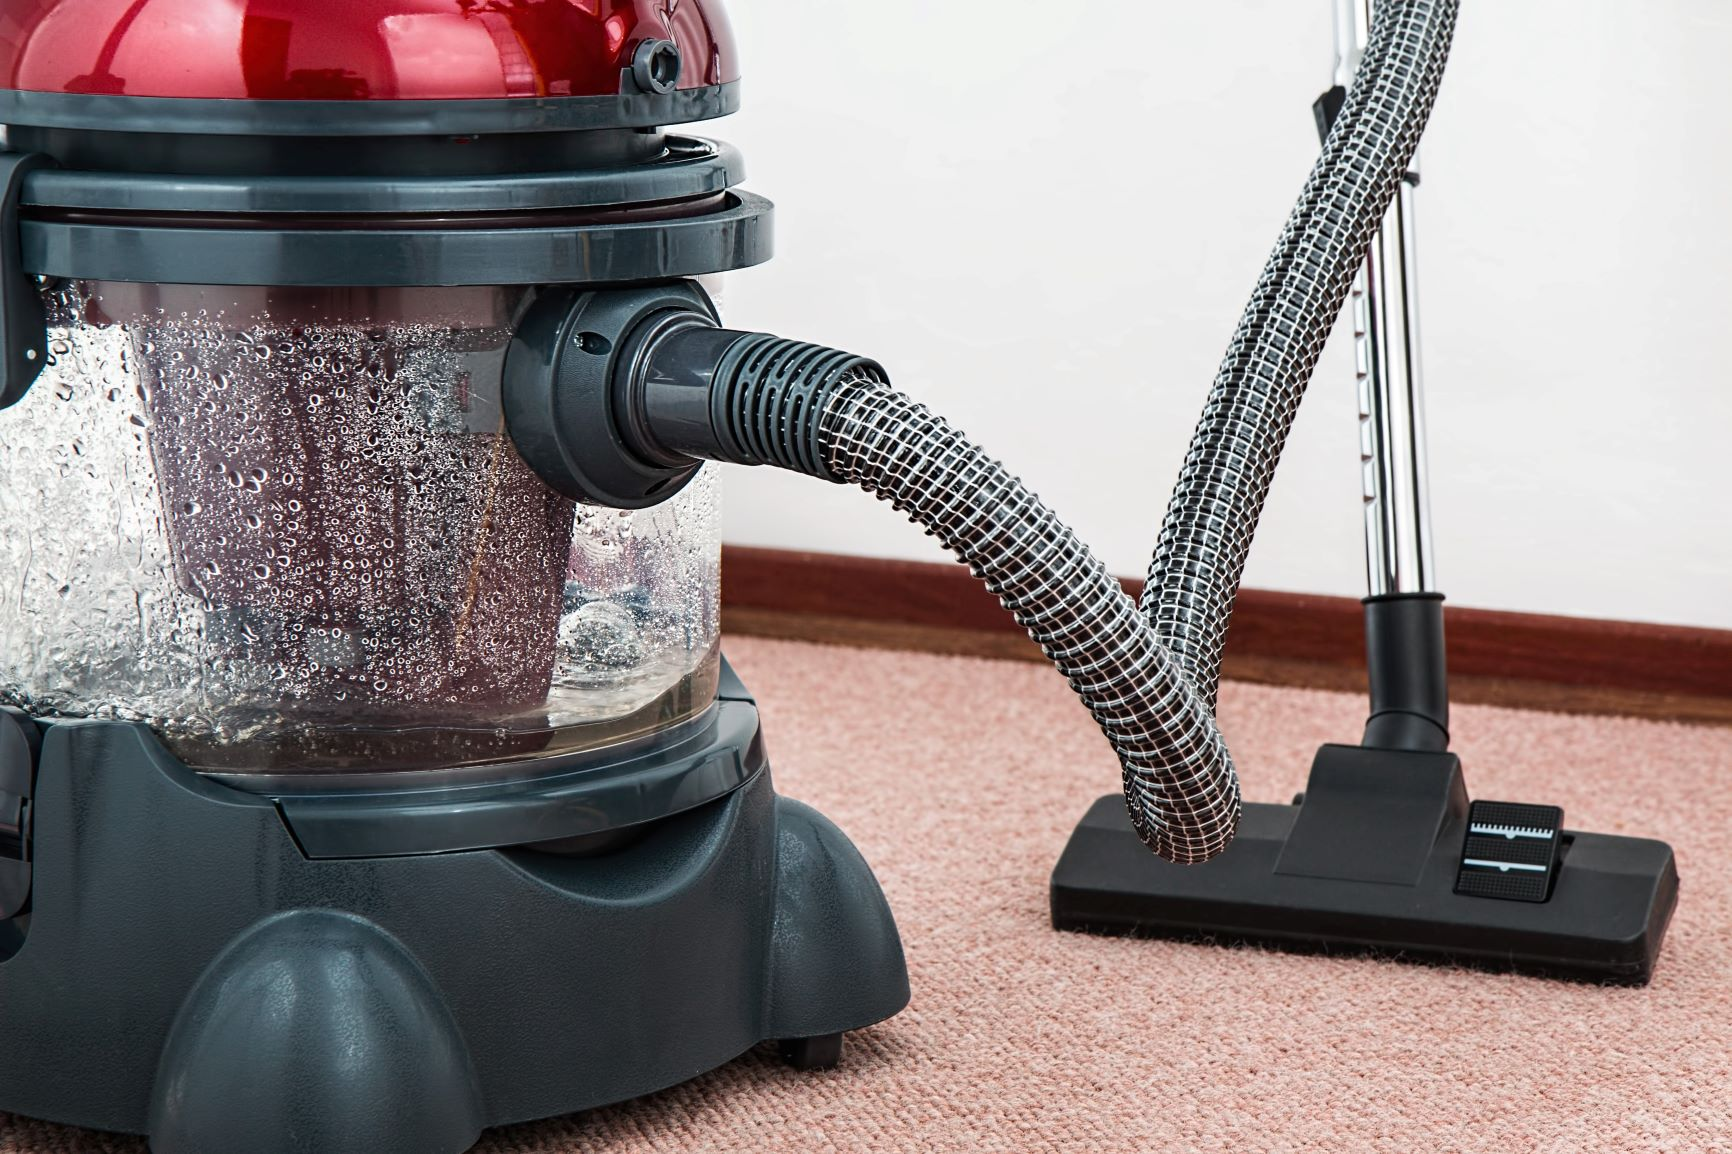 Can you clean carpets with laundry soap?